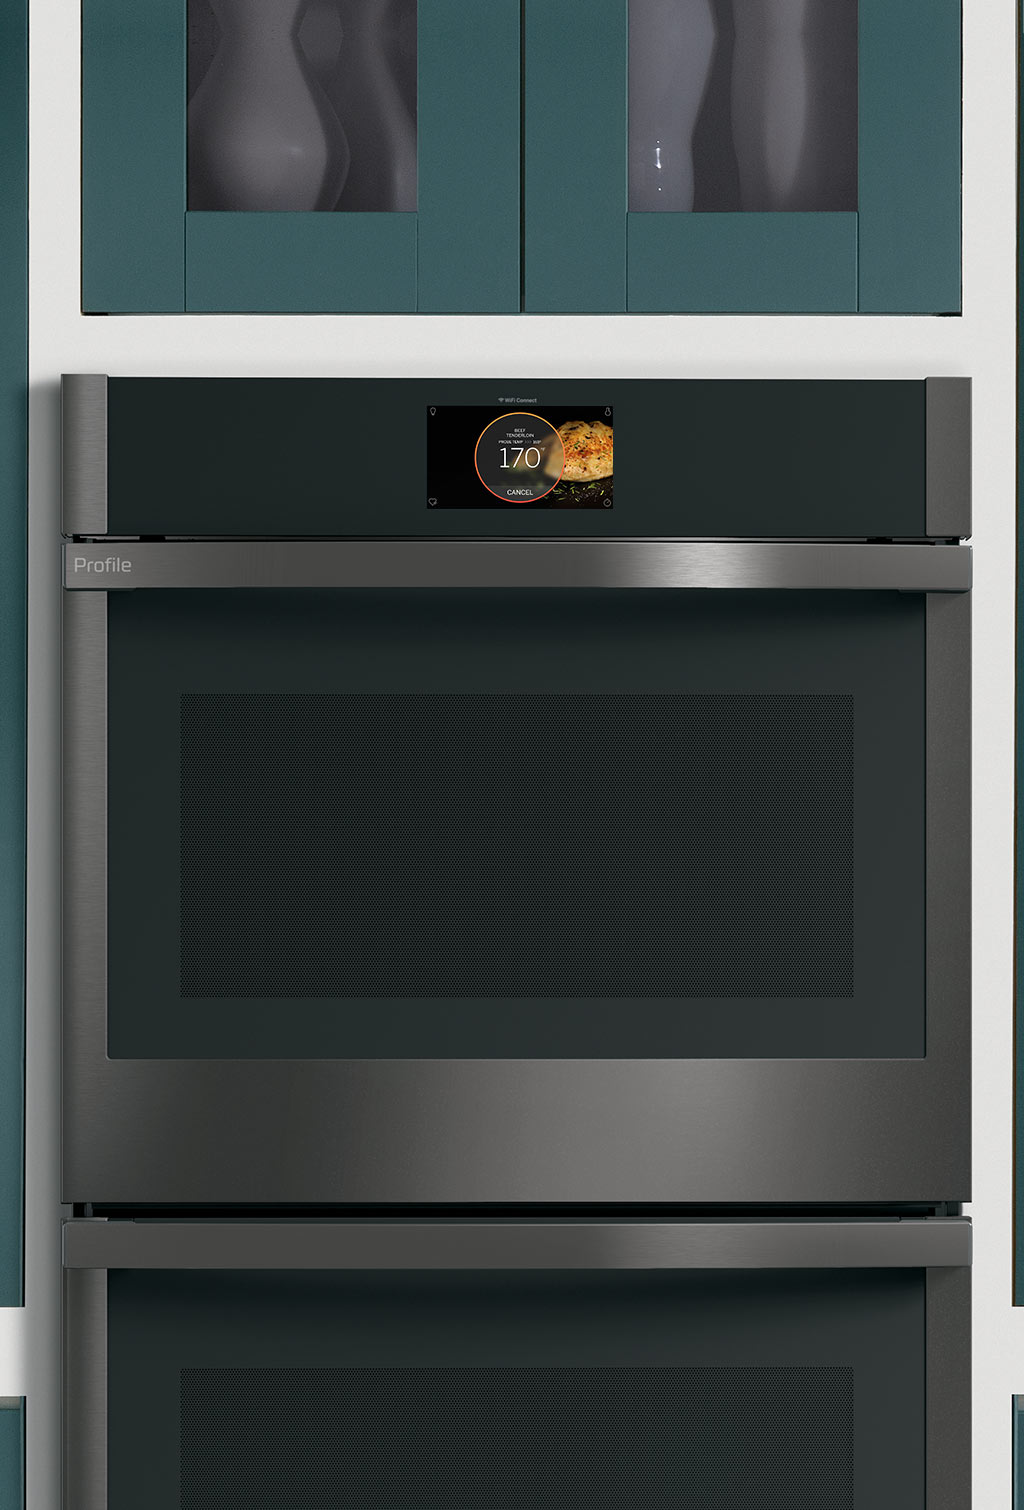 GE Profile Double Wall Oven with Green Cabinets